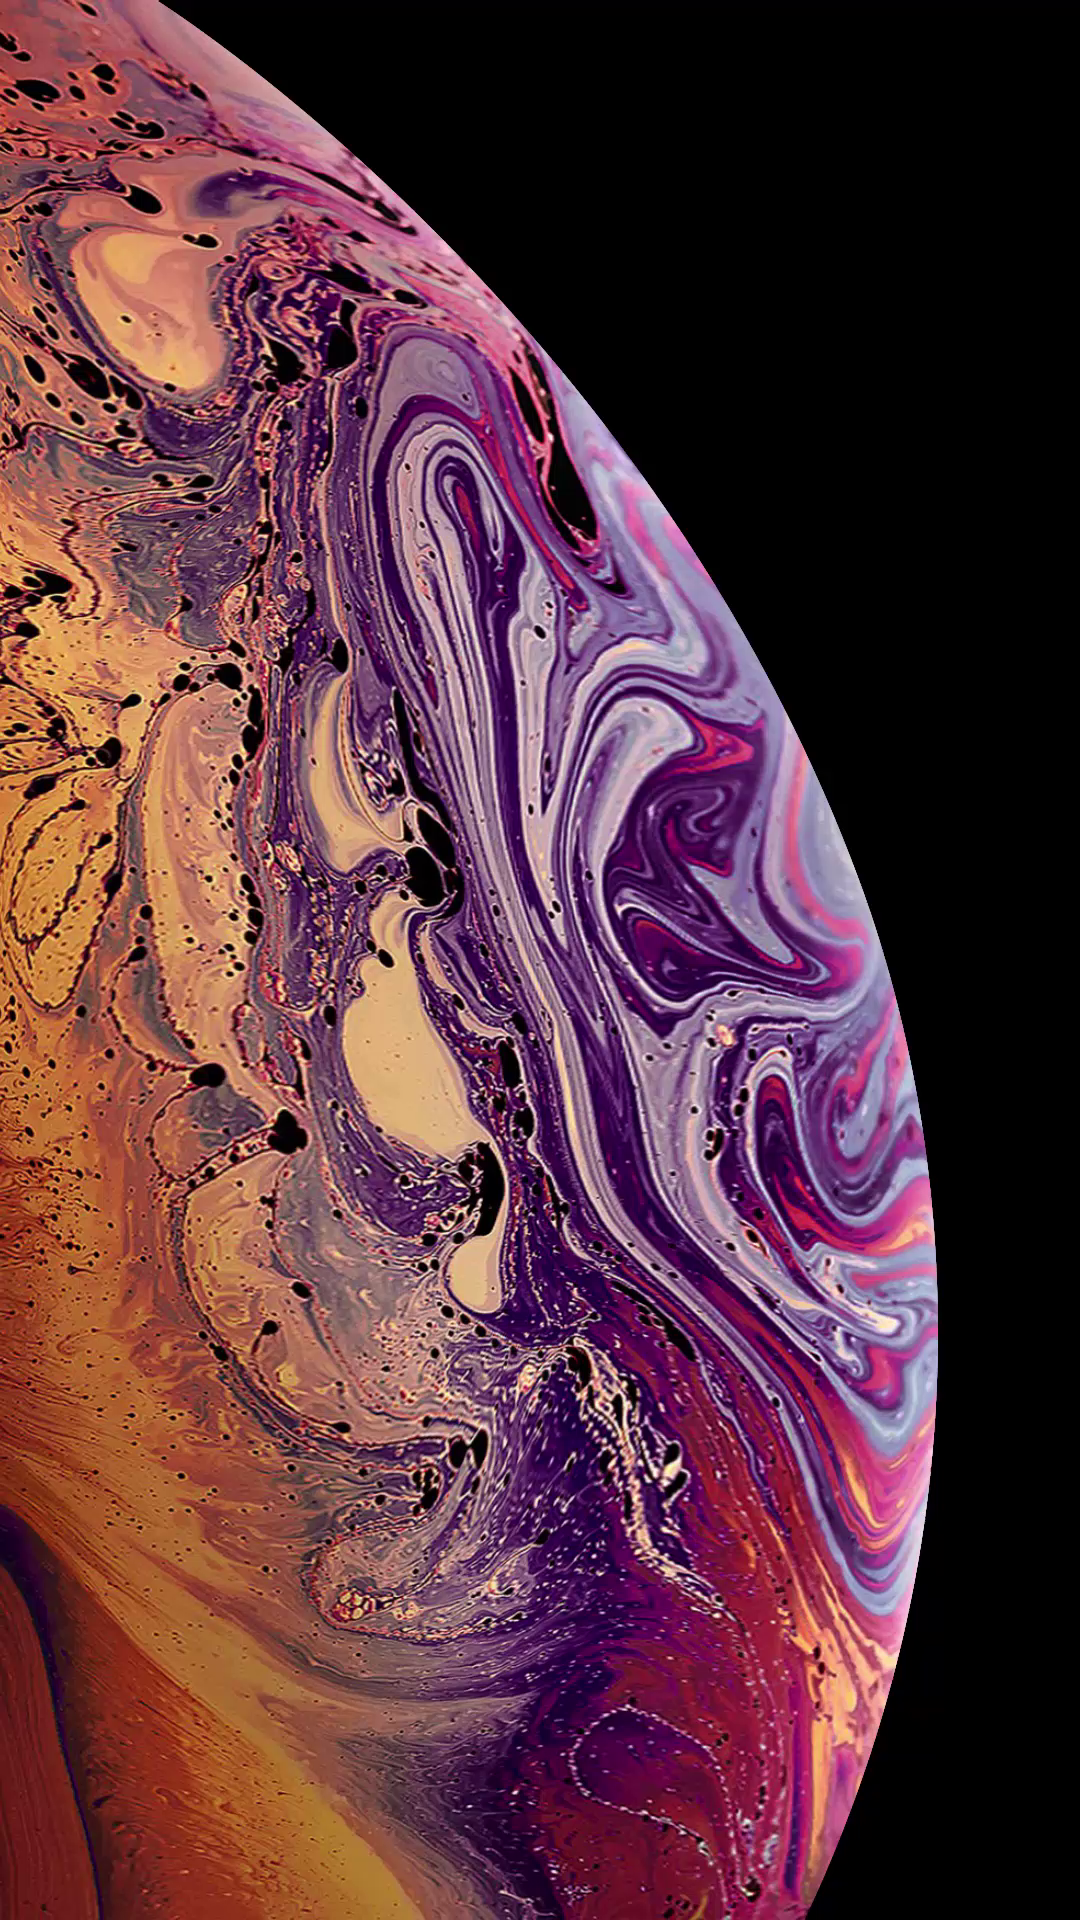 iPhone XS MAX live wallpaper